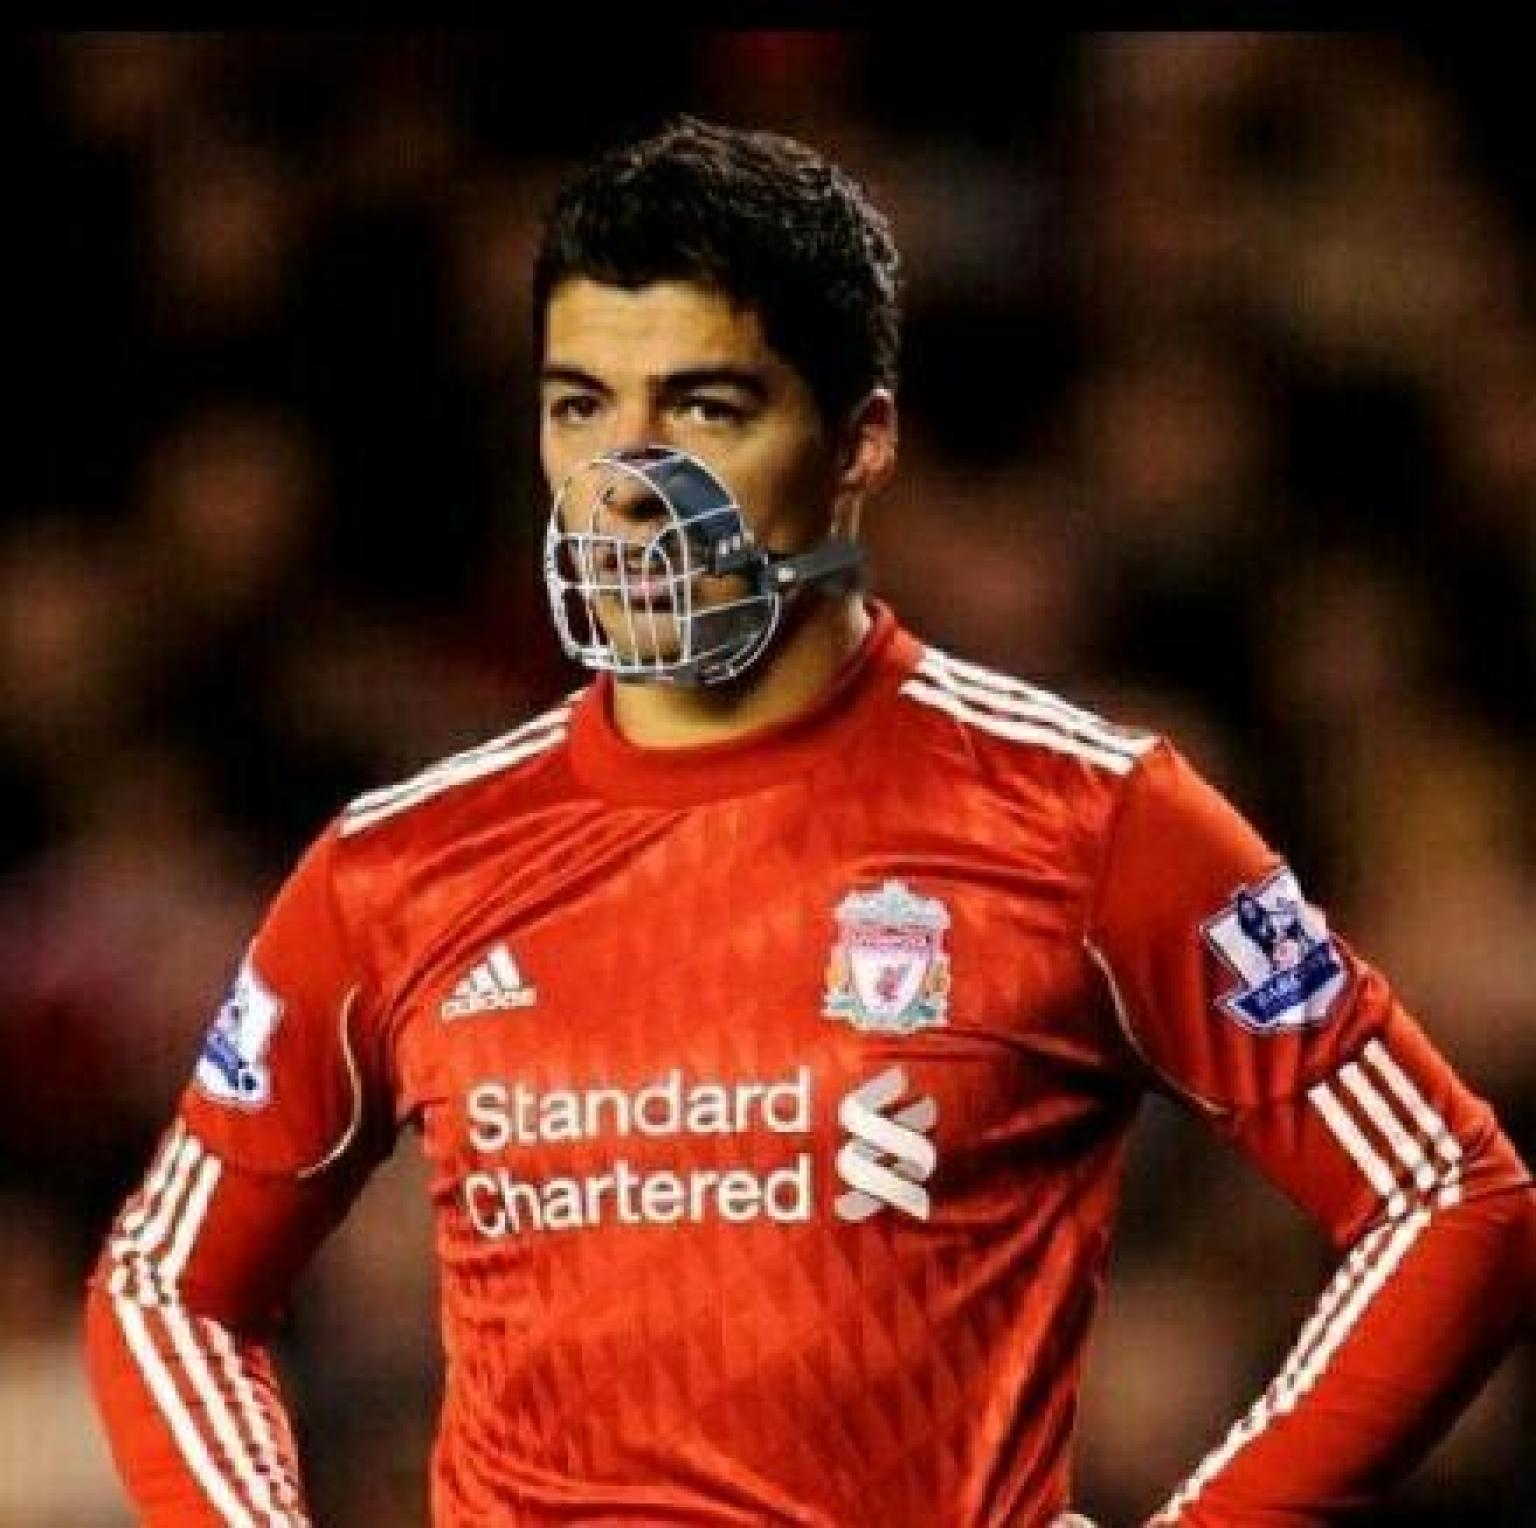 Luis Suarez Suspended For World Cup Banned From The Sport For 4